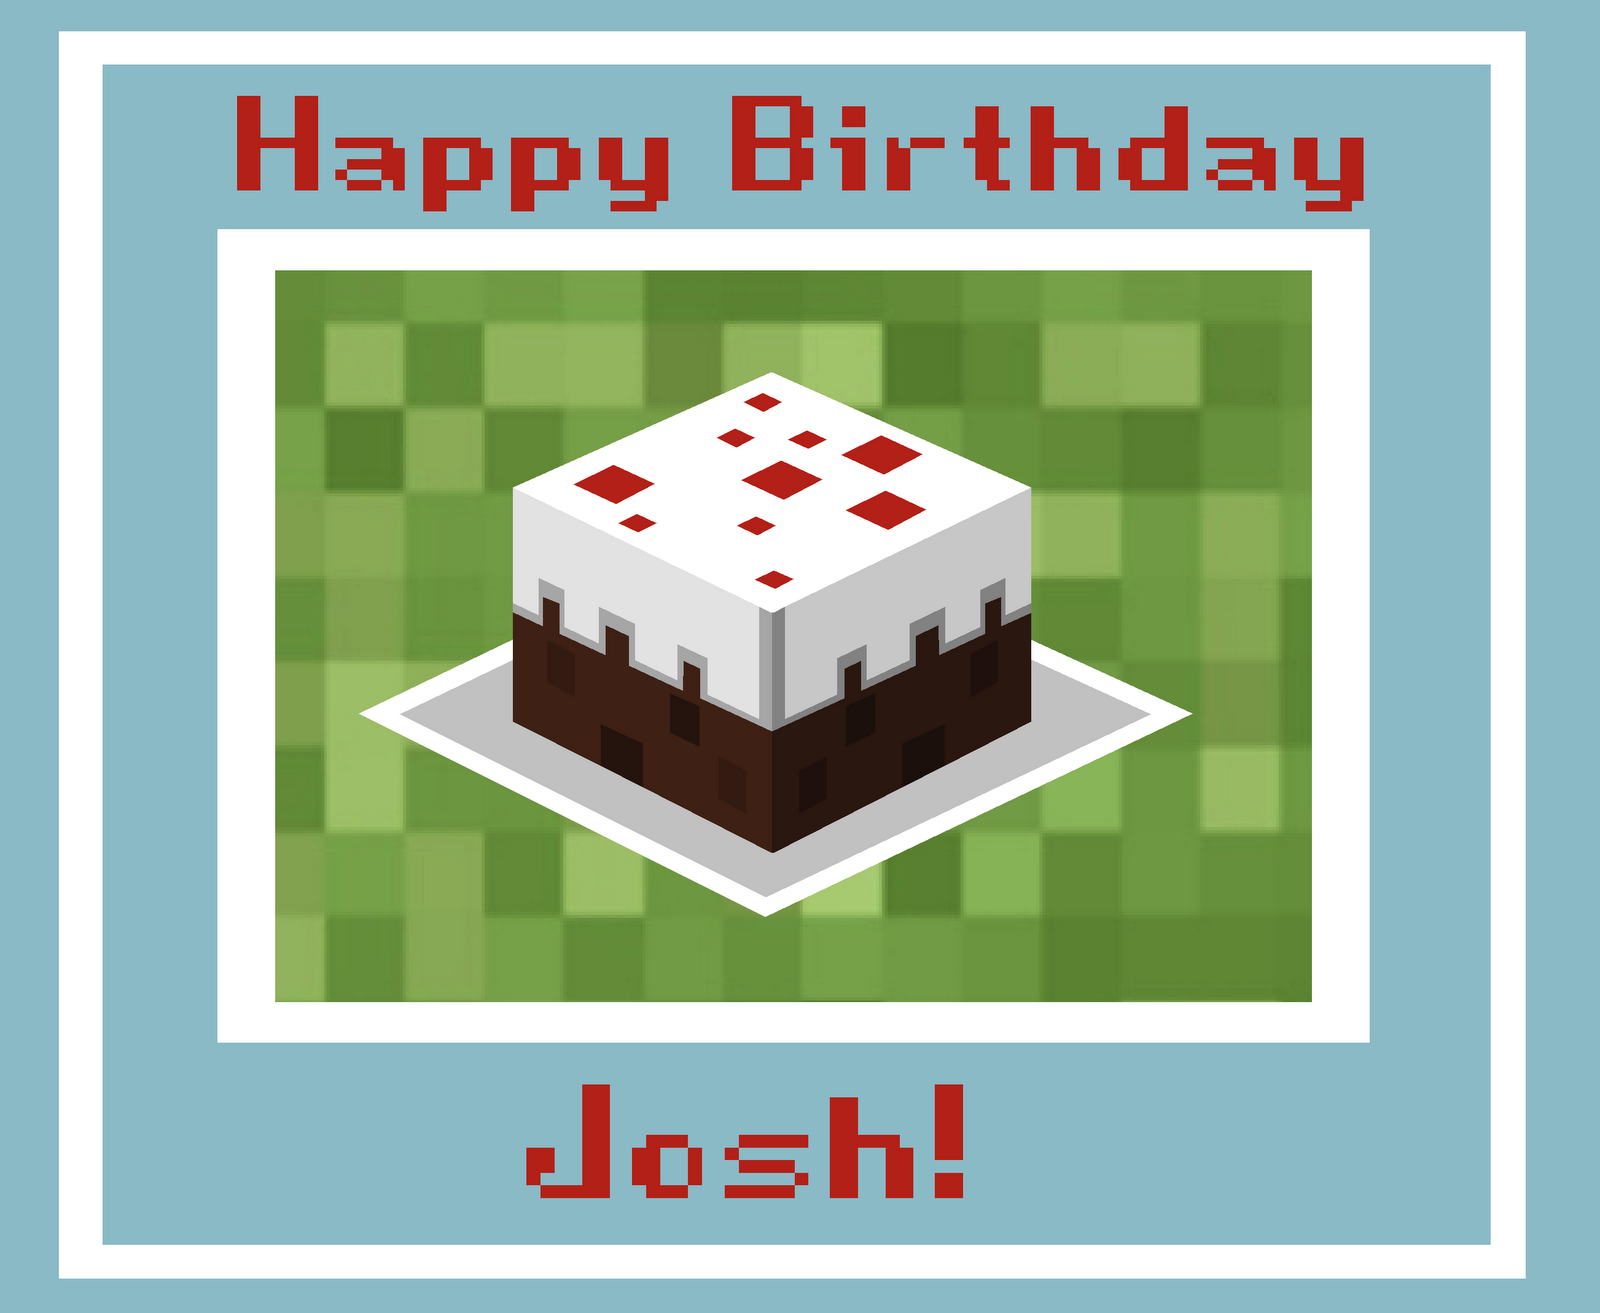 Seven Blue Orchids: Josh's Birthday Card